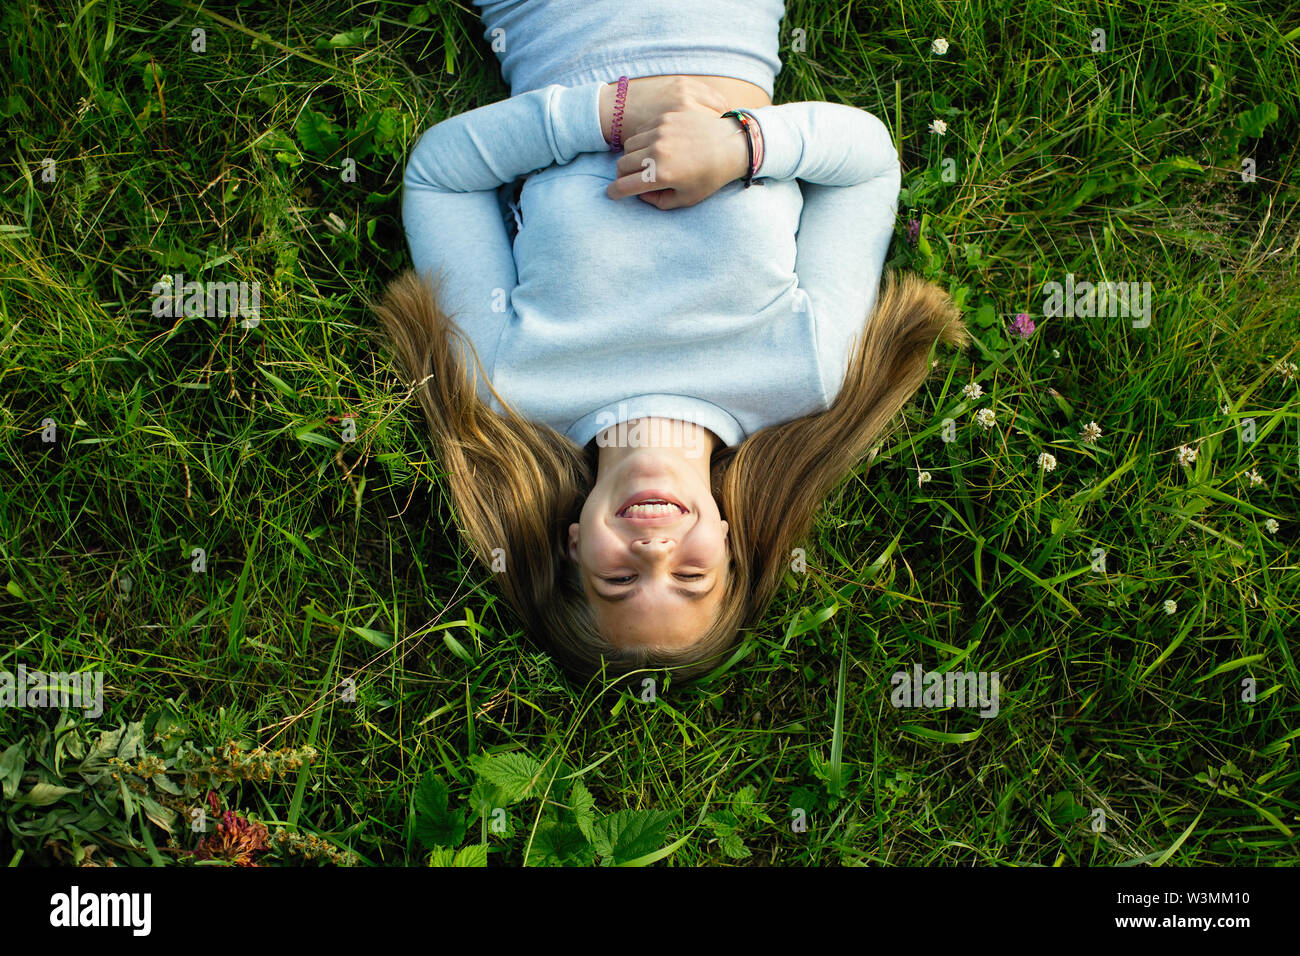 Teen girl lying in green grass in the summer. Photo view from the top. - Stock Image